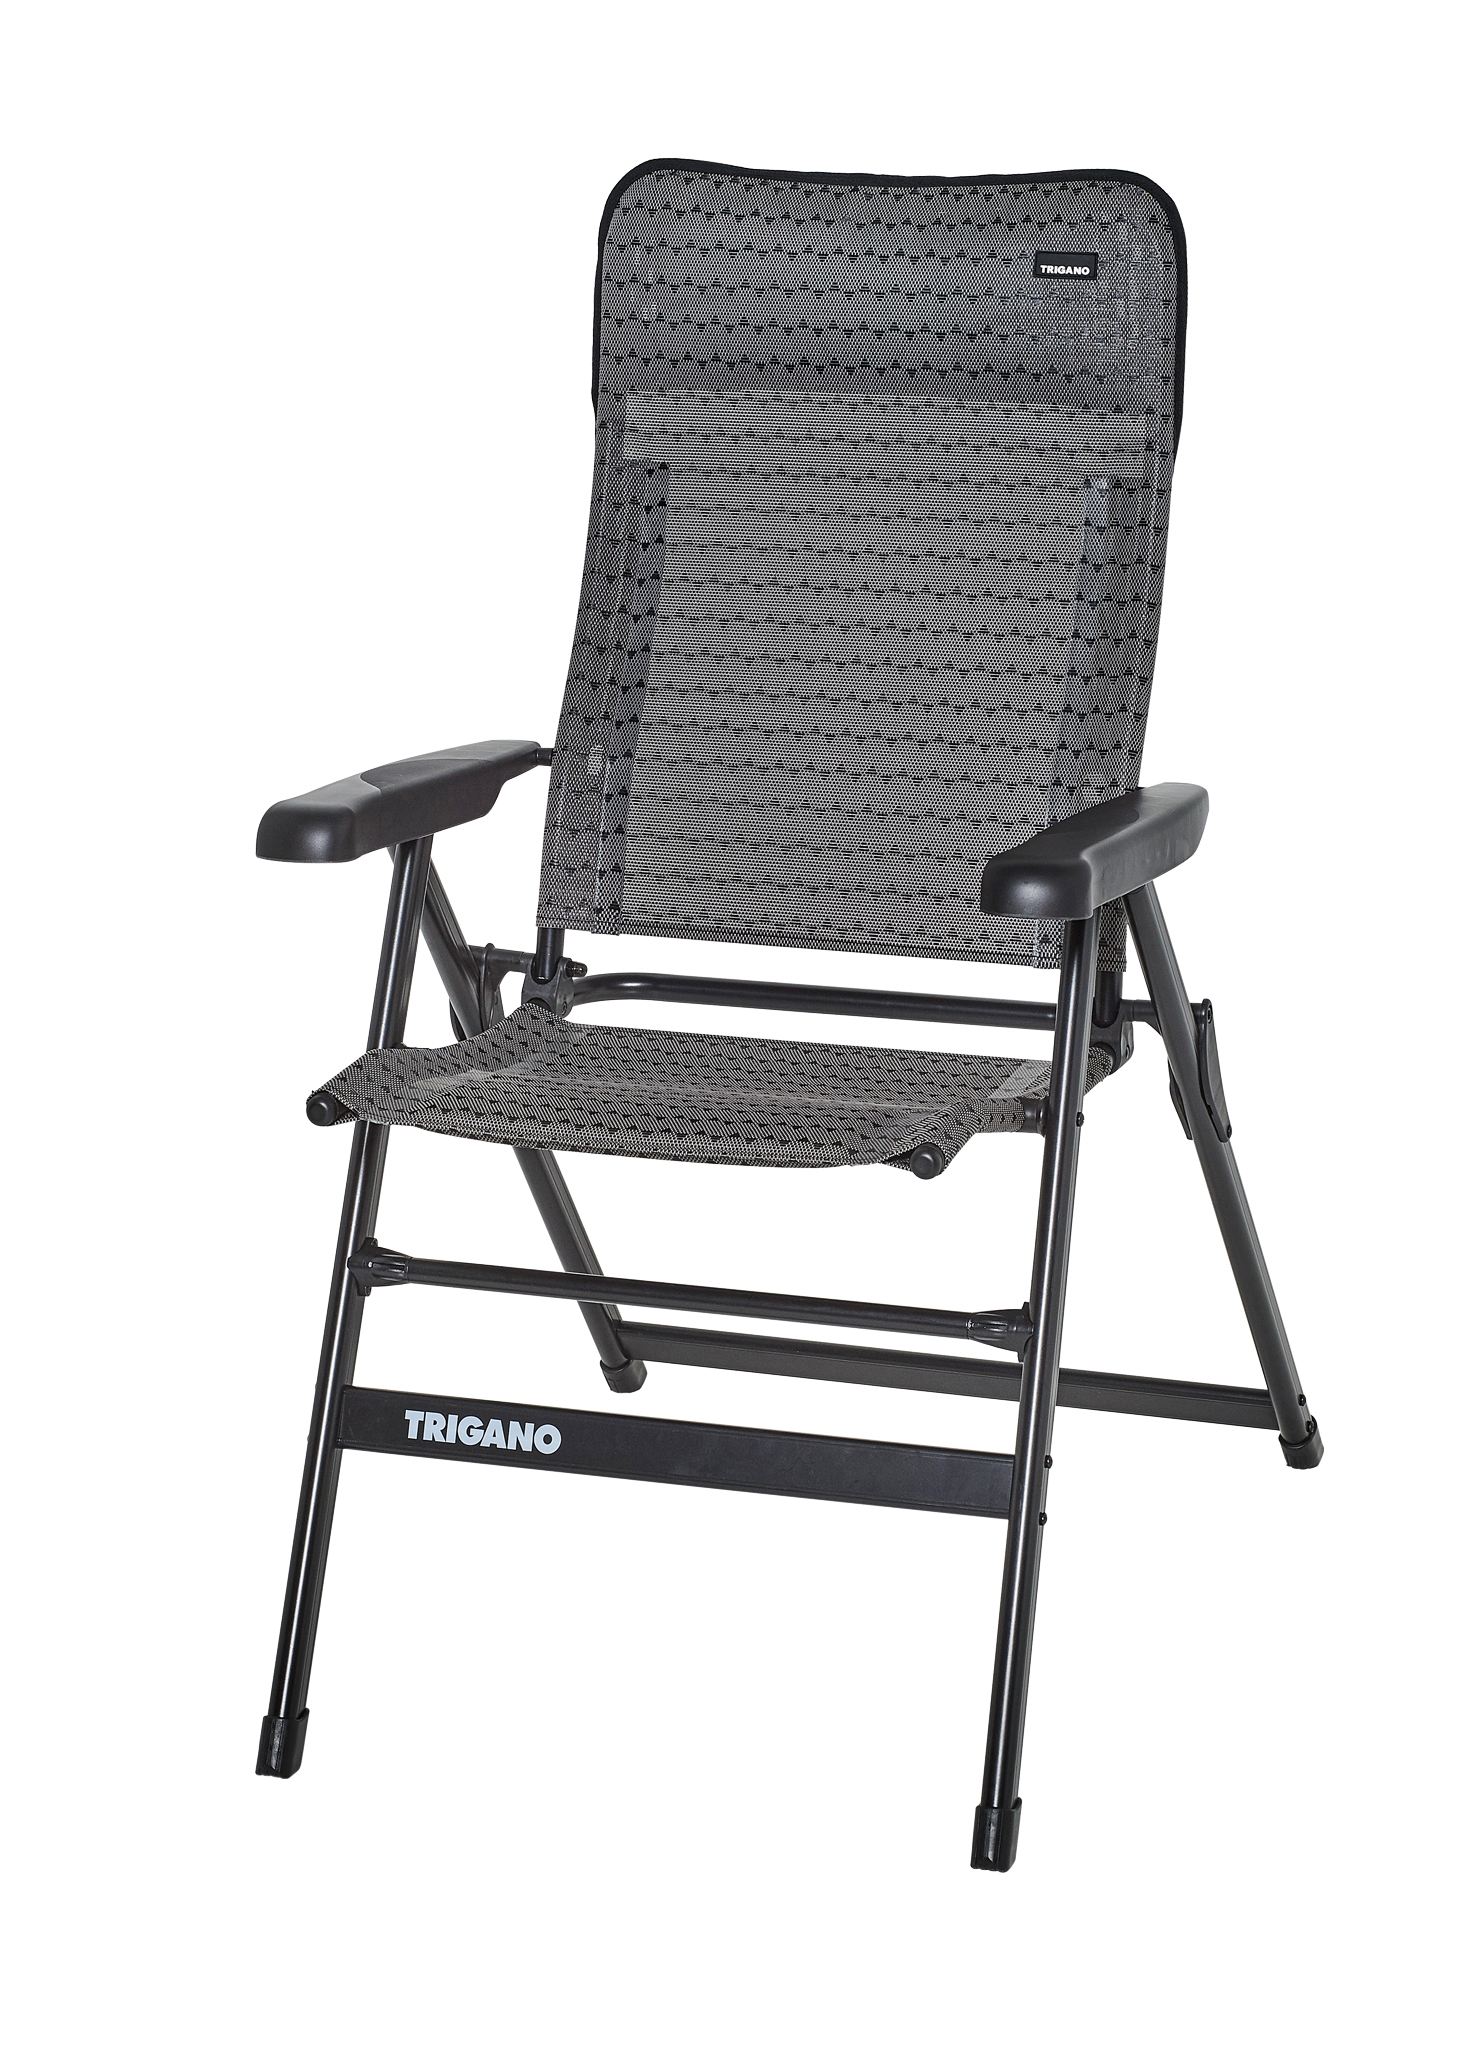 Trigano Sessel Low Cocoon